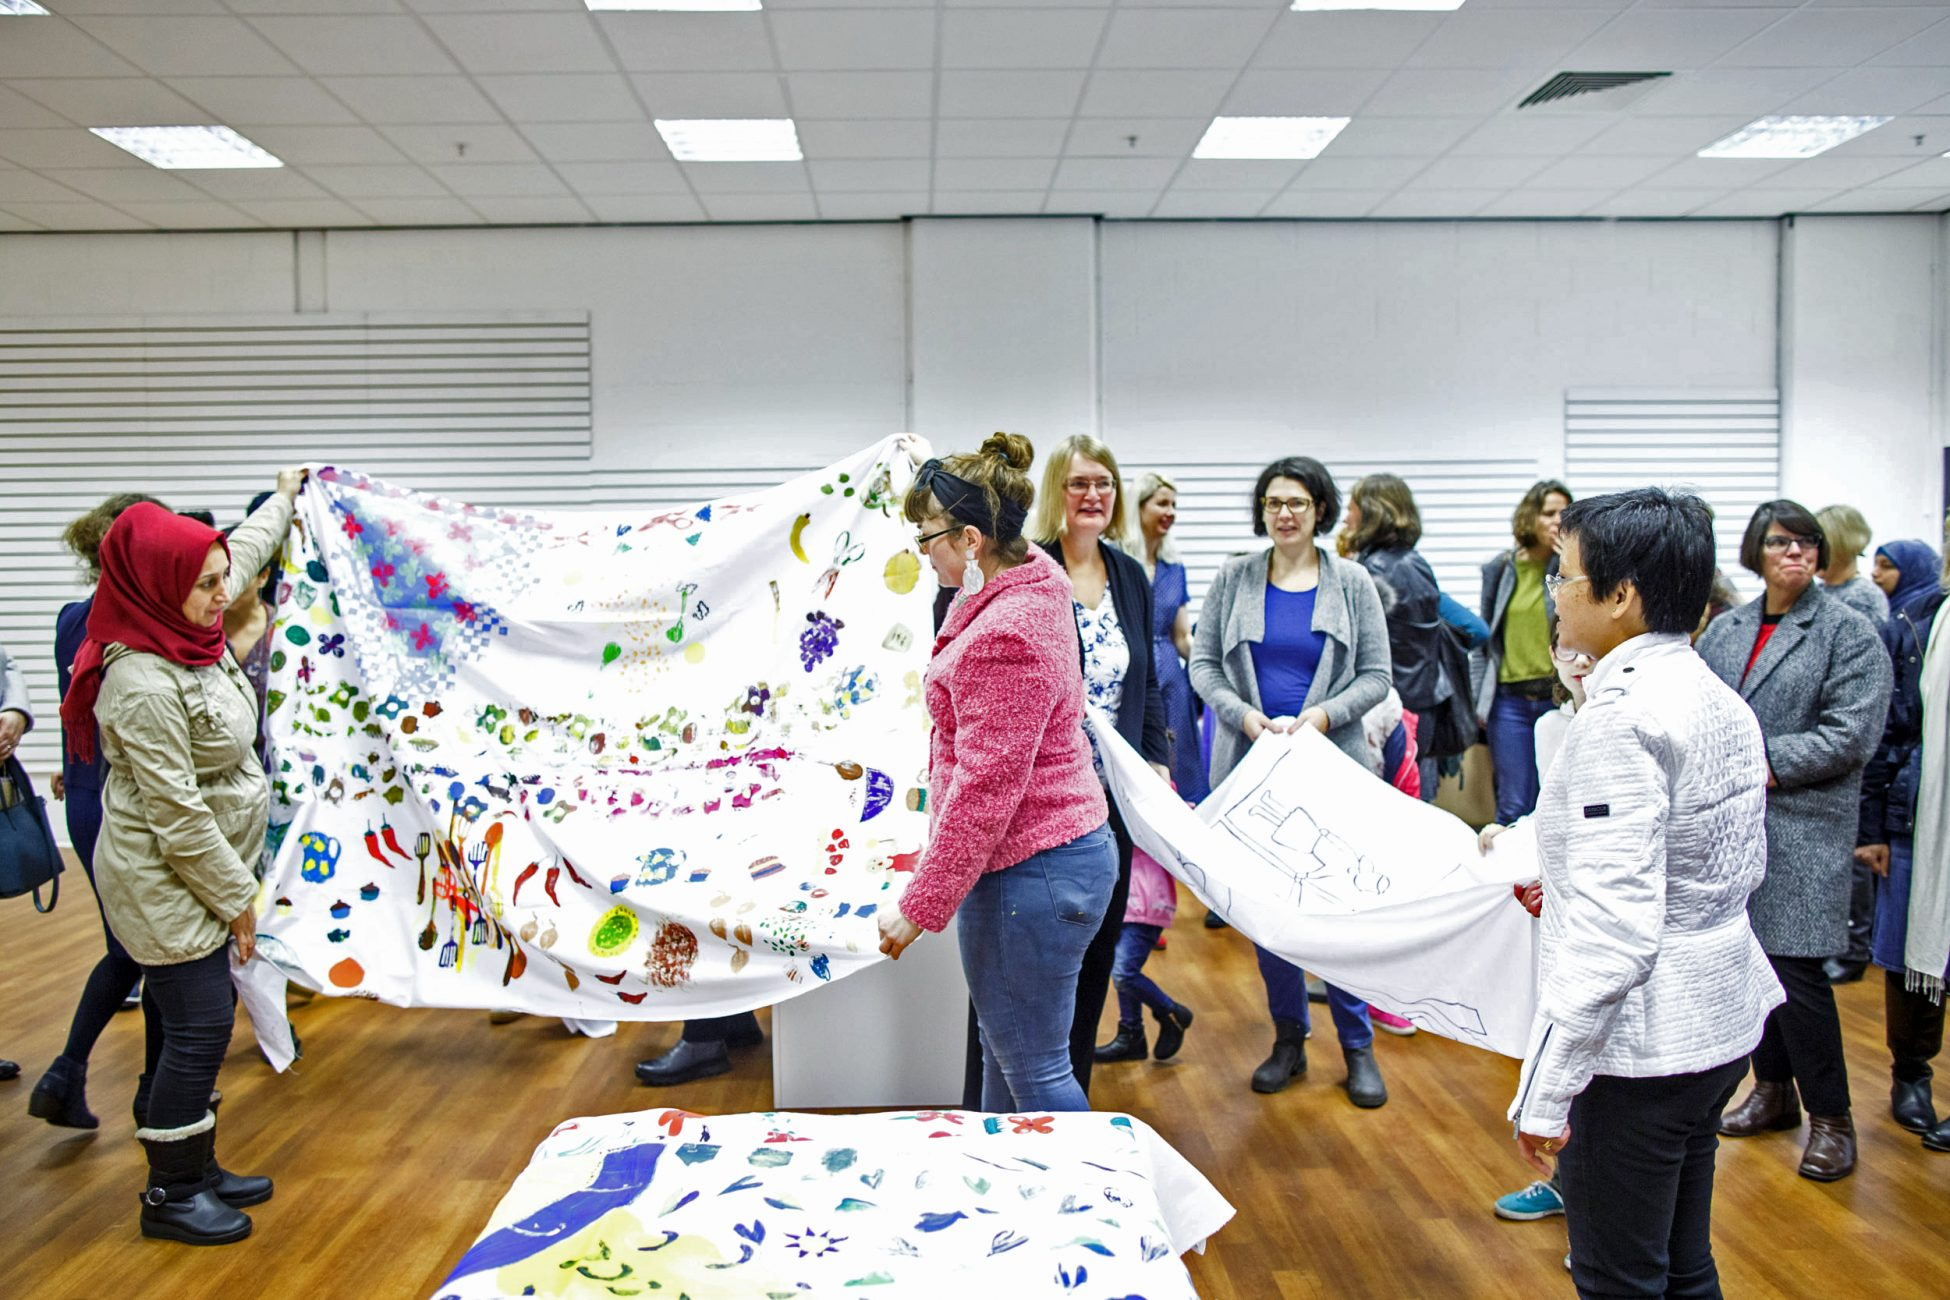 Photo of a group of women in a gallery, A decorated piece of fabric is spread over a table in the front, behind that some of the women are holding up two more large pieces of fabric that have been decorated. Others are milling around the gallery space.